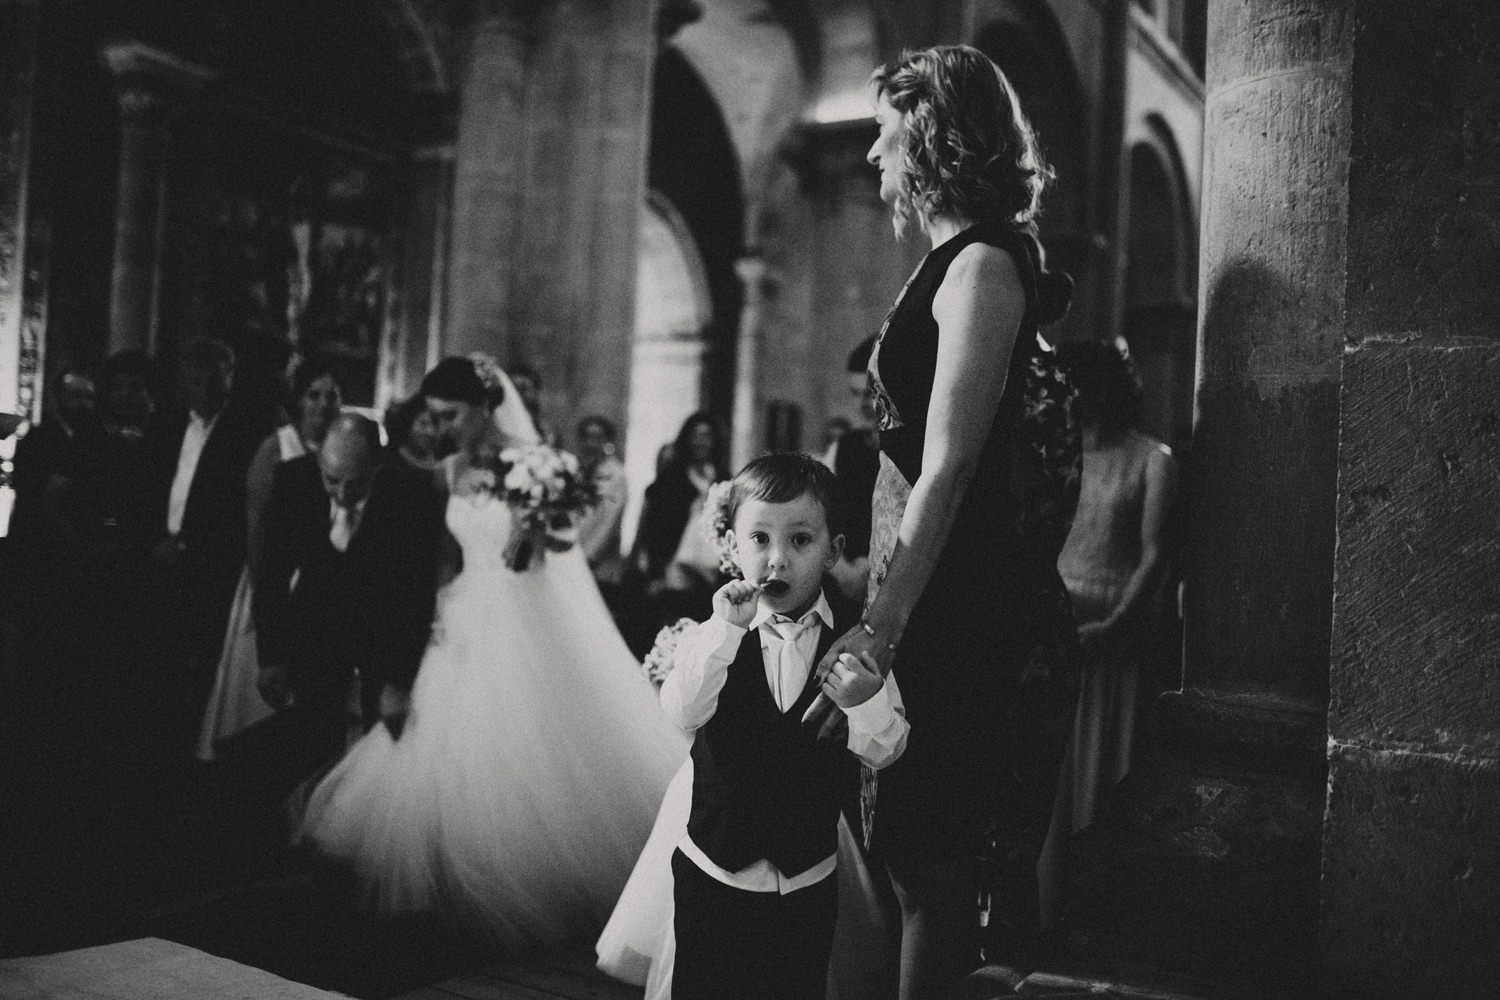 pageboy eating lollipop while bride and her father walks down the aisle in a wedding ceremony in coimbra portugal